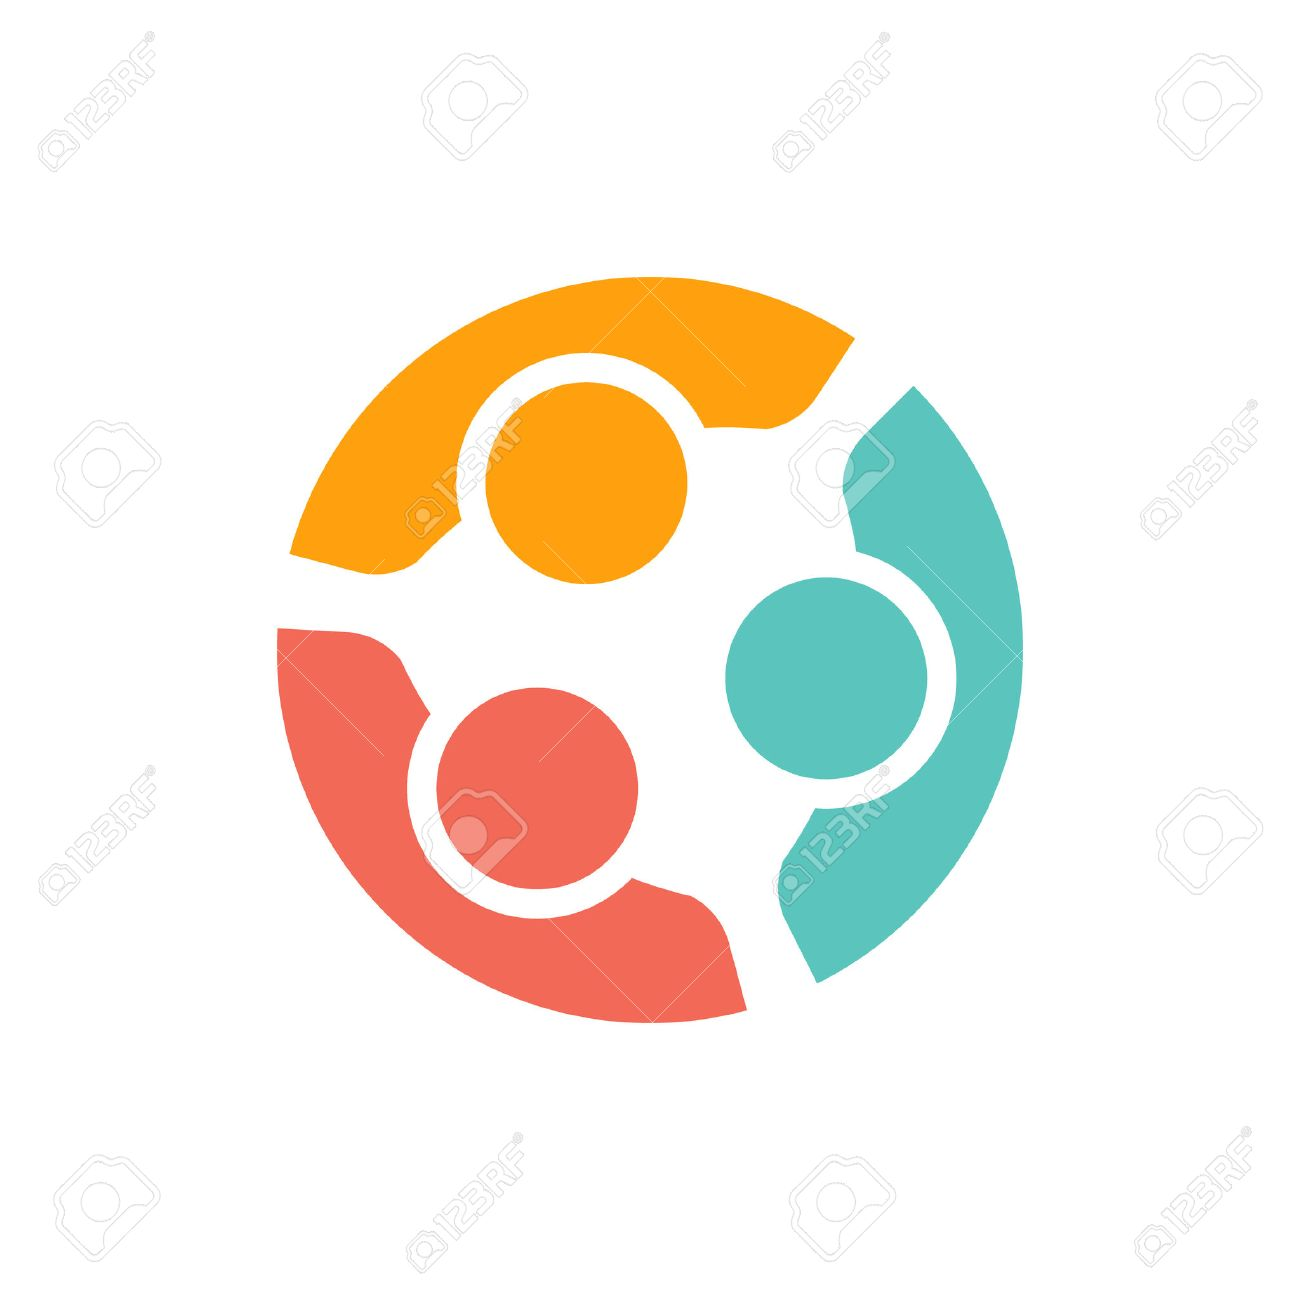 Team of three people logo. Concept of people group meeting collaboration and great work. - 52631564